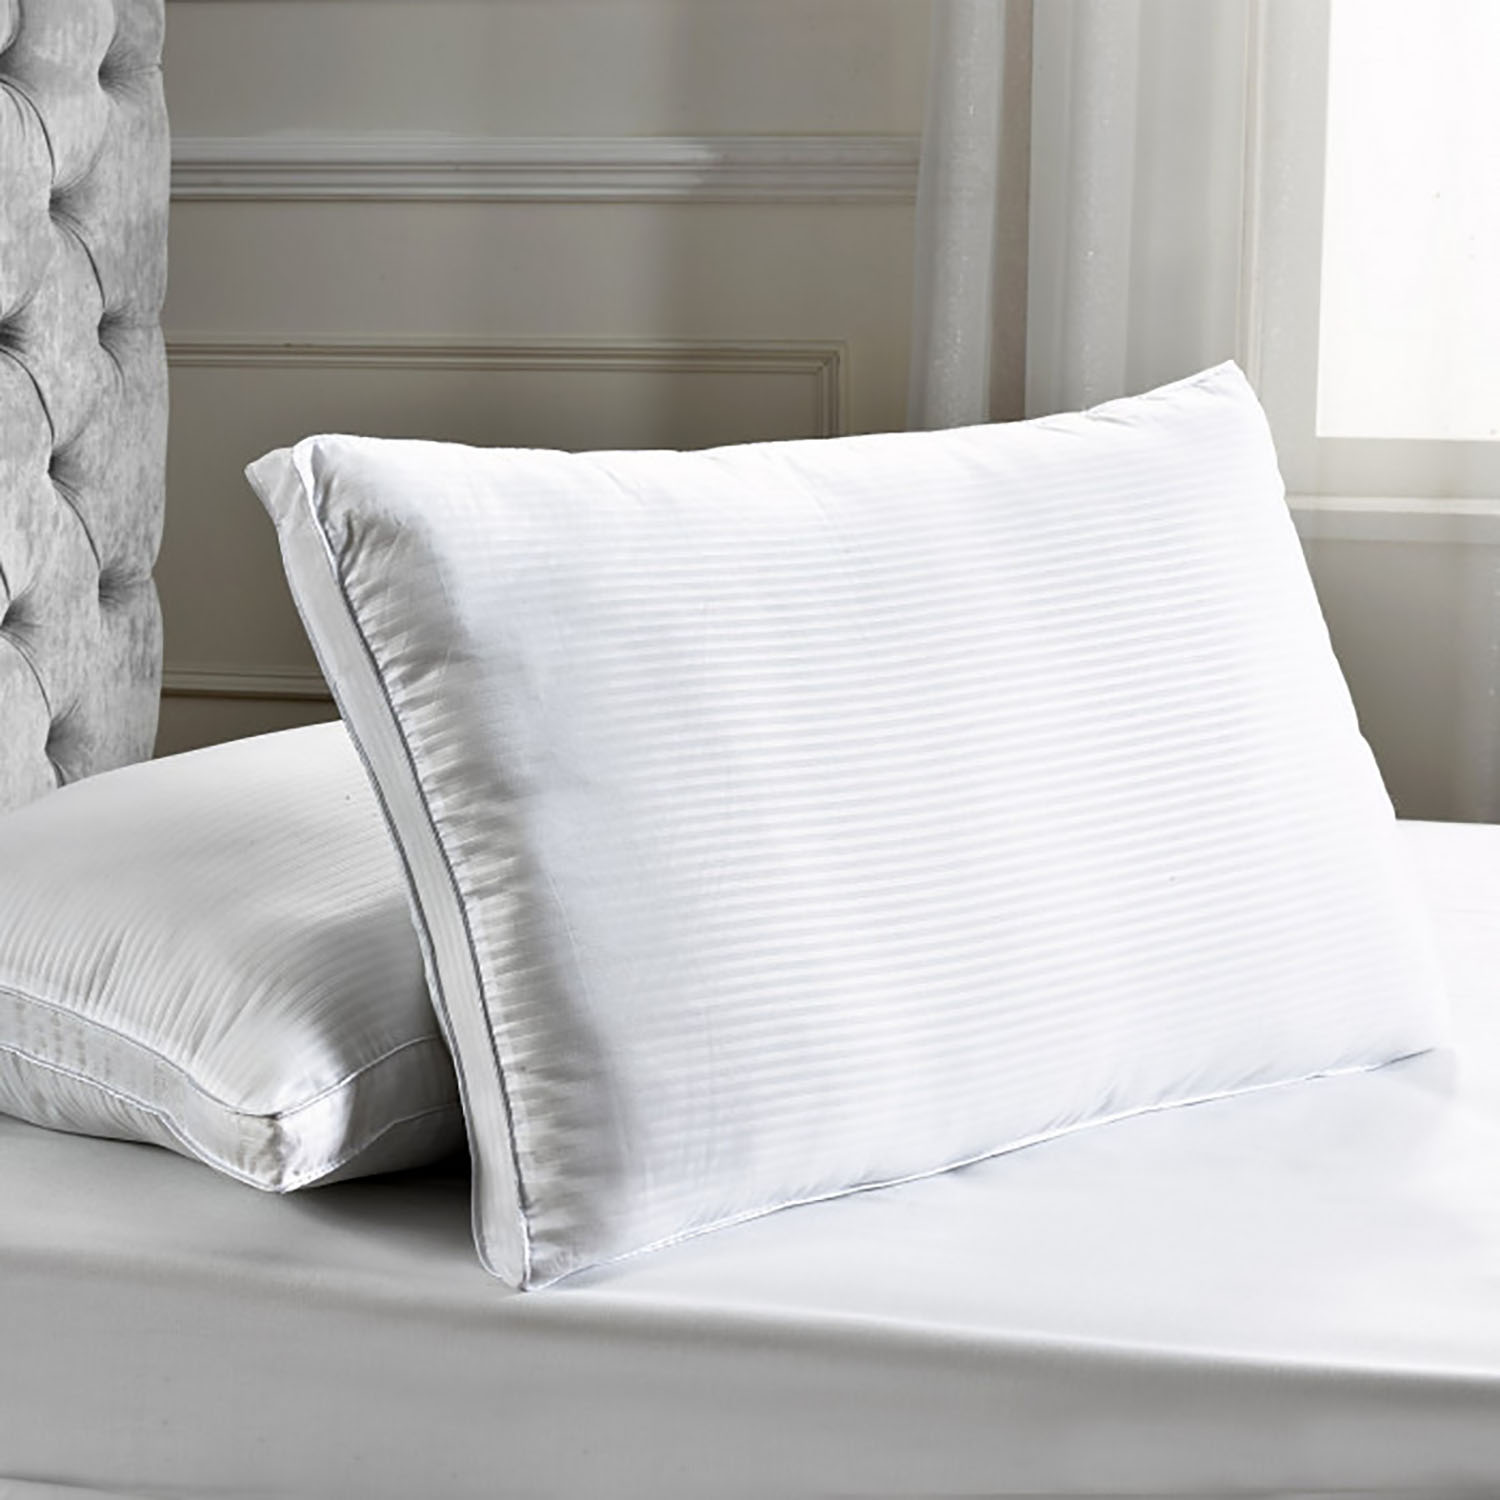 Image of Julian Charles Standard Filled Pillow, 66x66cm, White